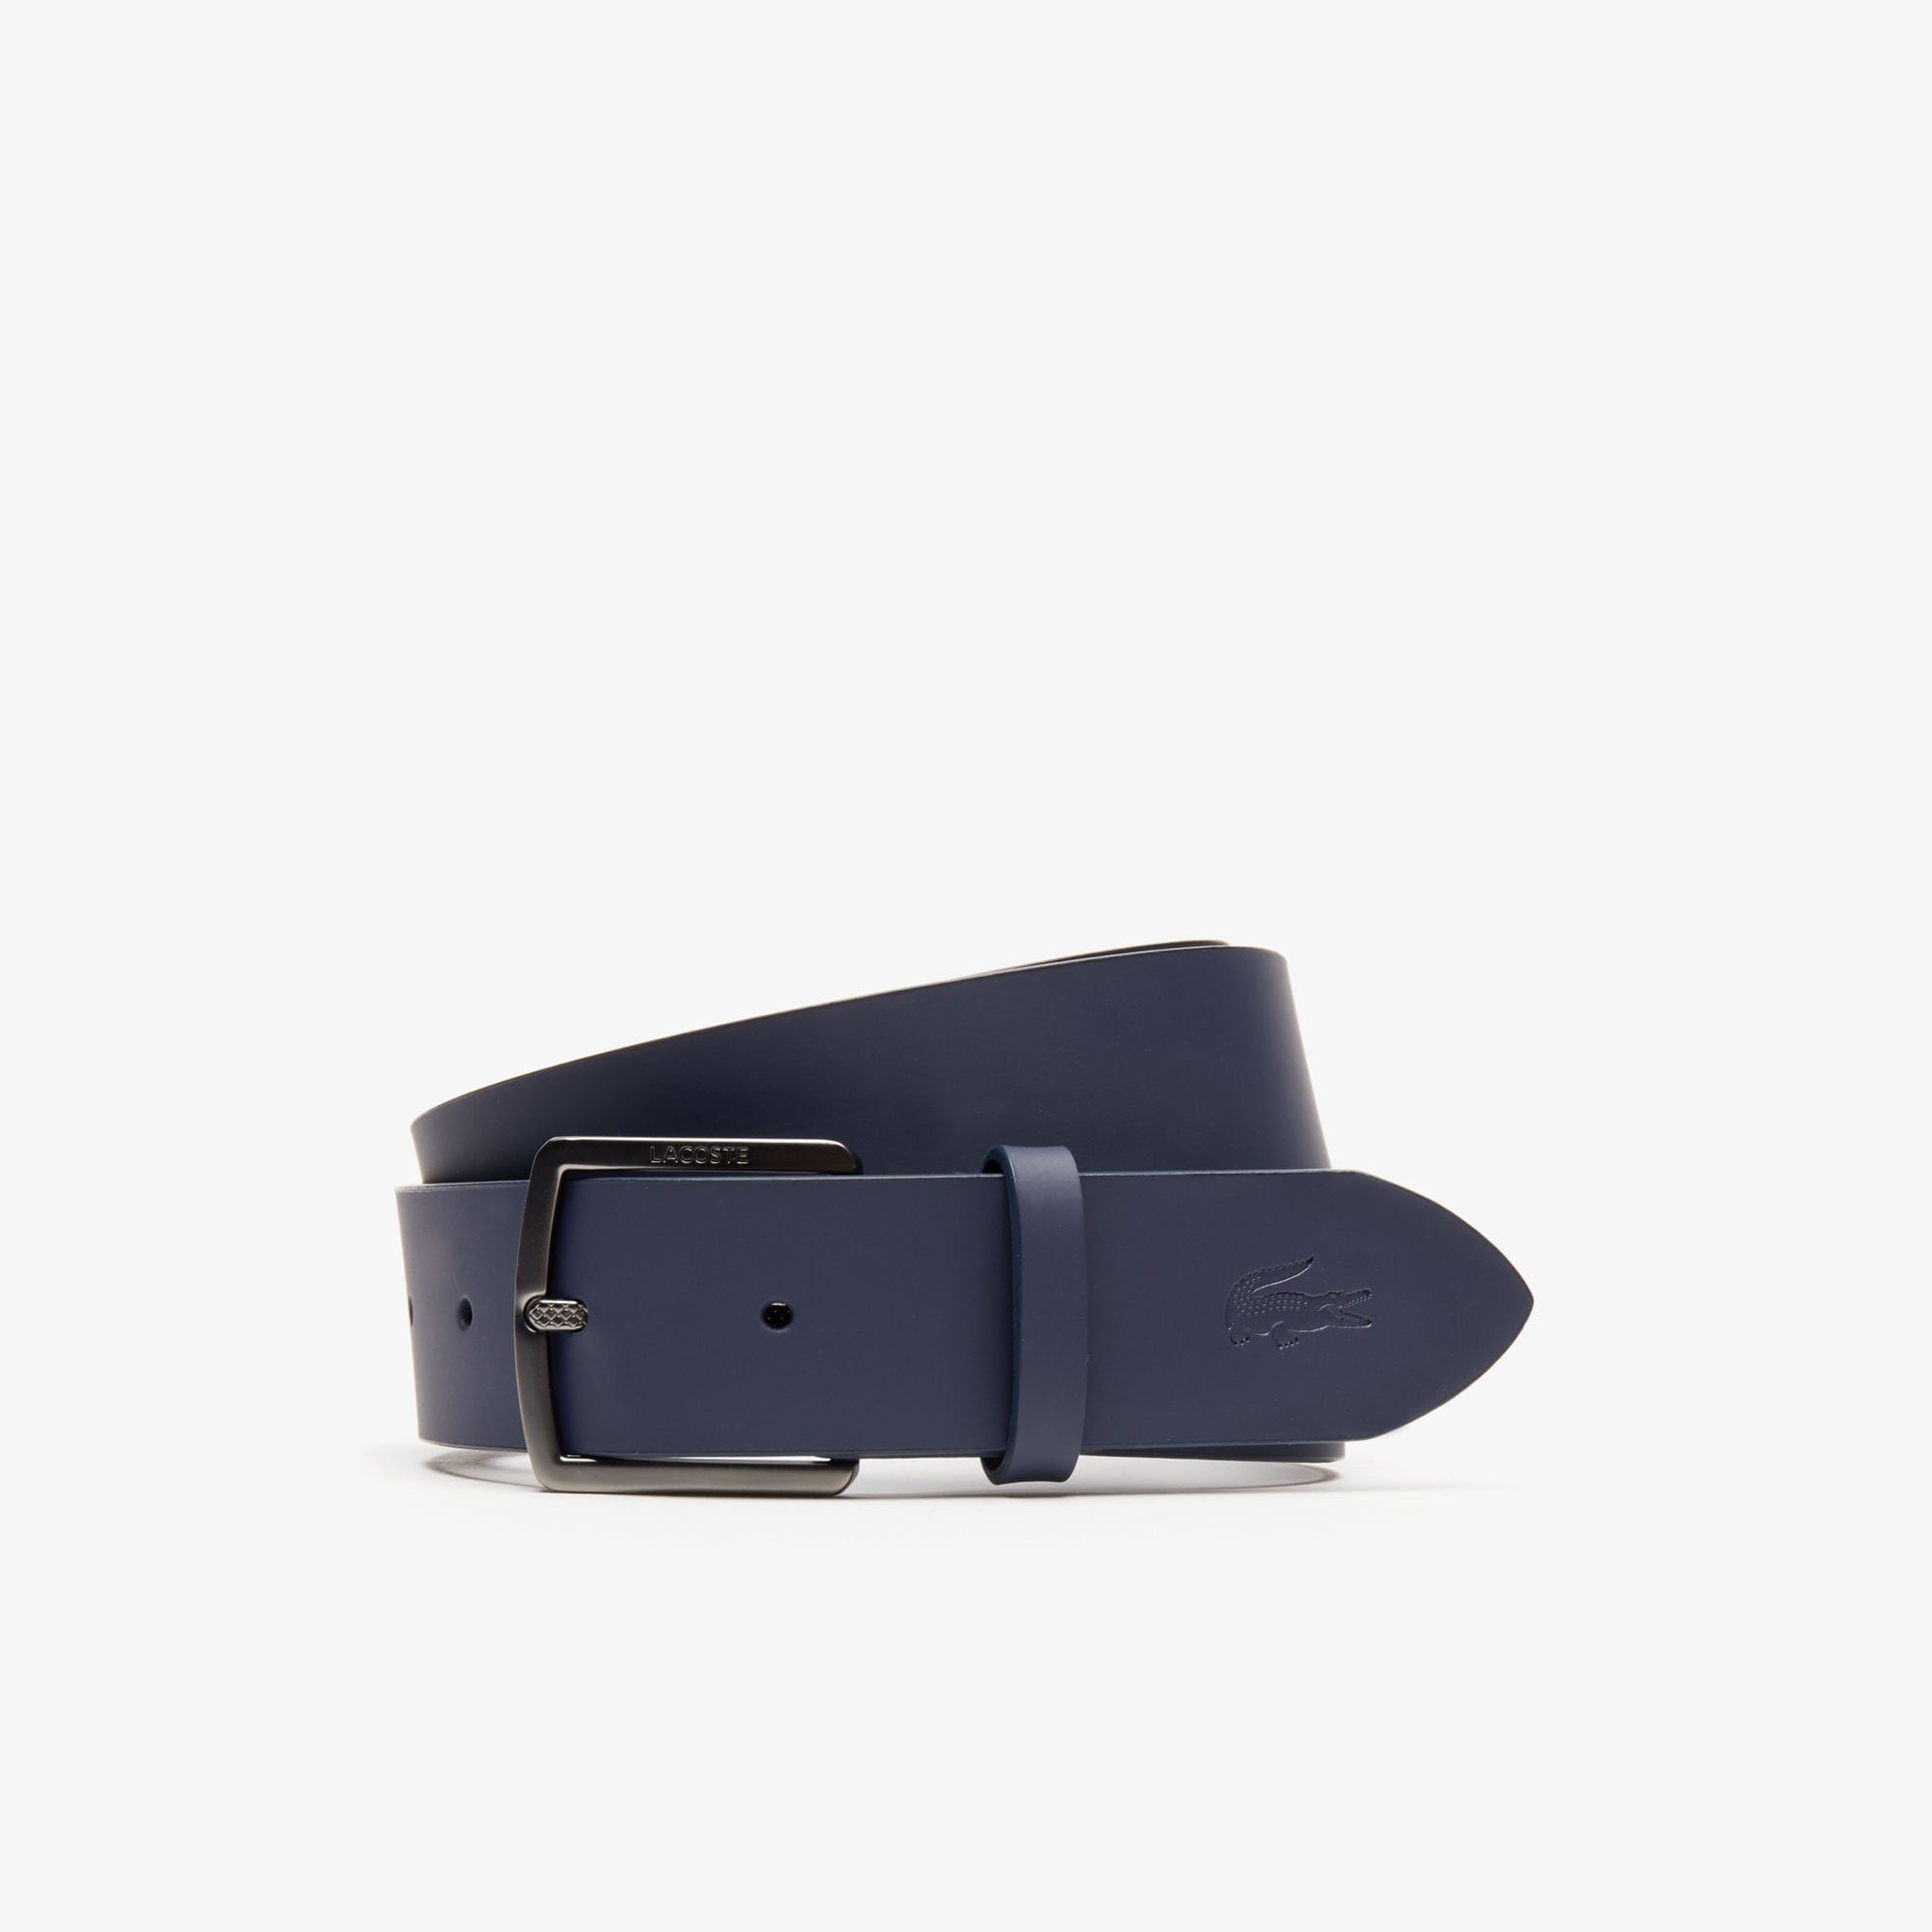 Lacoste Belts Men's Engraved-Buckle Smooth Leather Belt